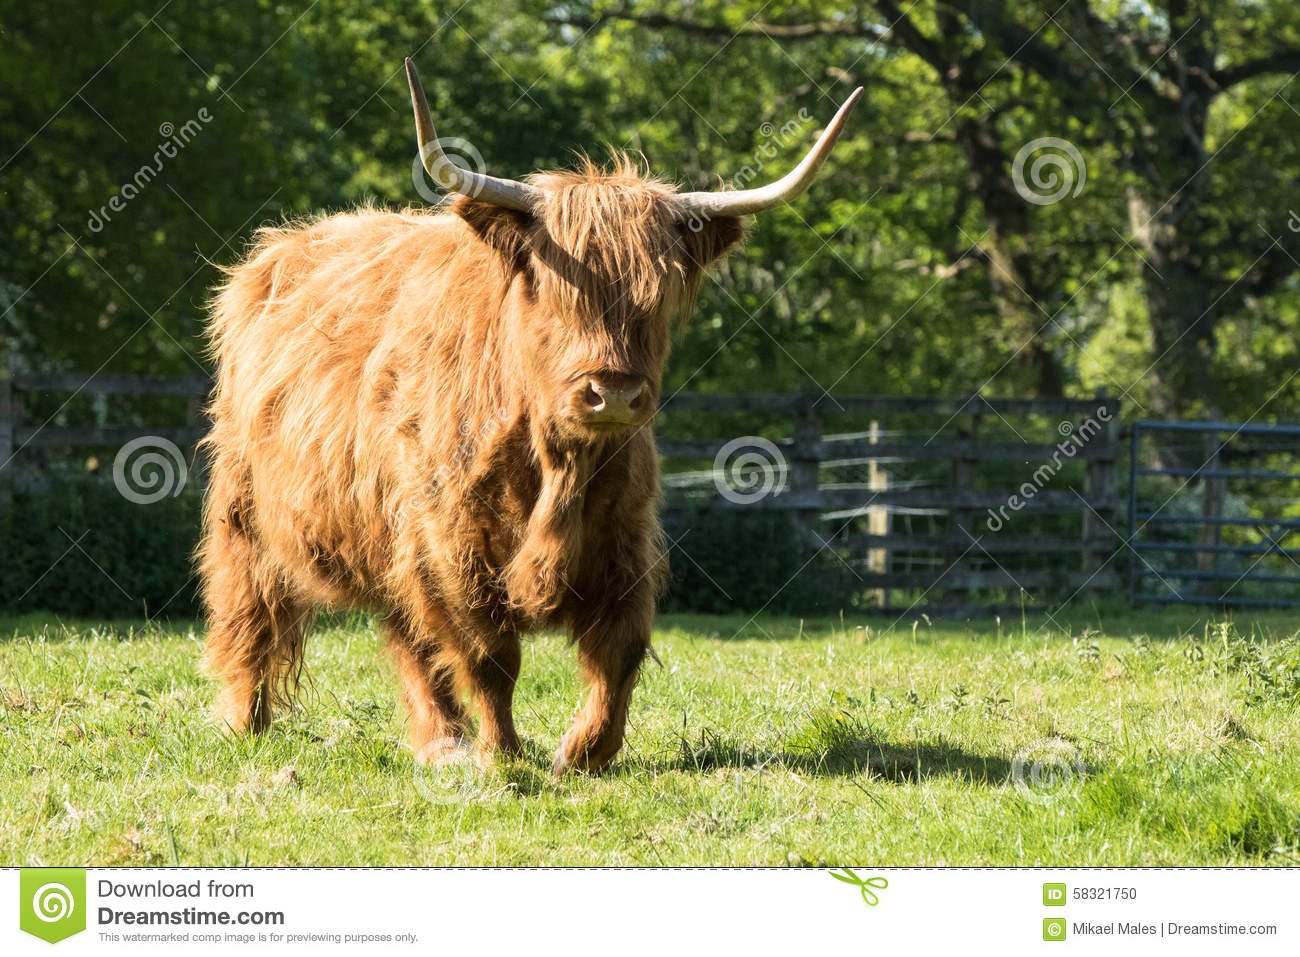 Hairy Highland Cow Walking In Grass Stock Photo - Image of ...